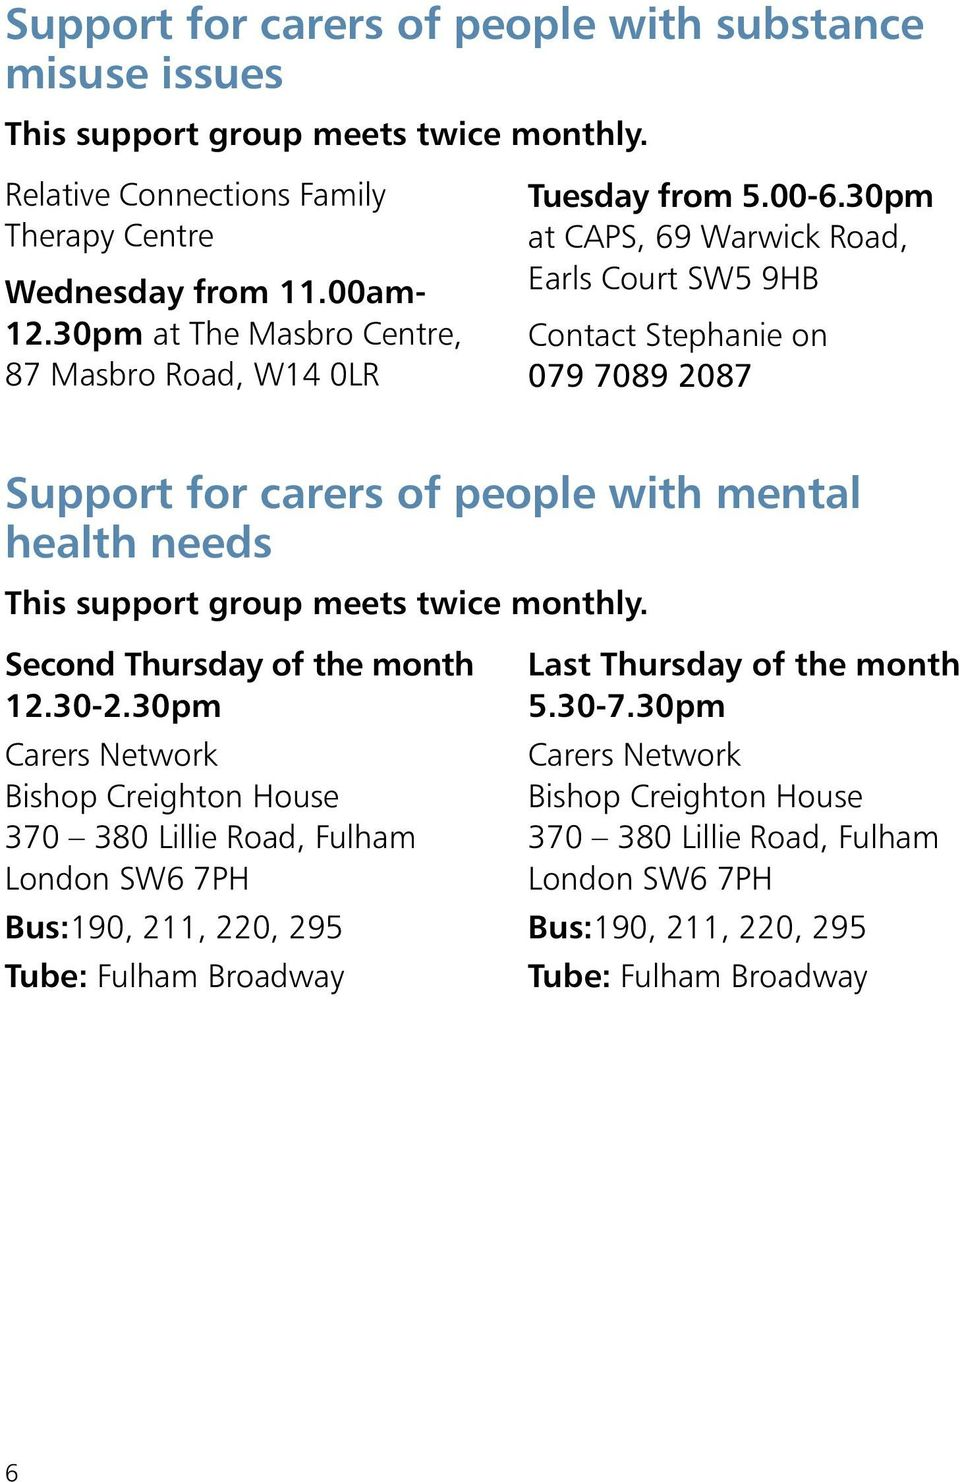 30pm at CAPS, 69 Warwick Road, Earls Court SW5 9HB Contact Stephanie on 079 7089 2087 Support for carers of people with mental health needs This support group meets twice monthly.